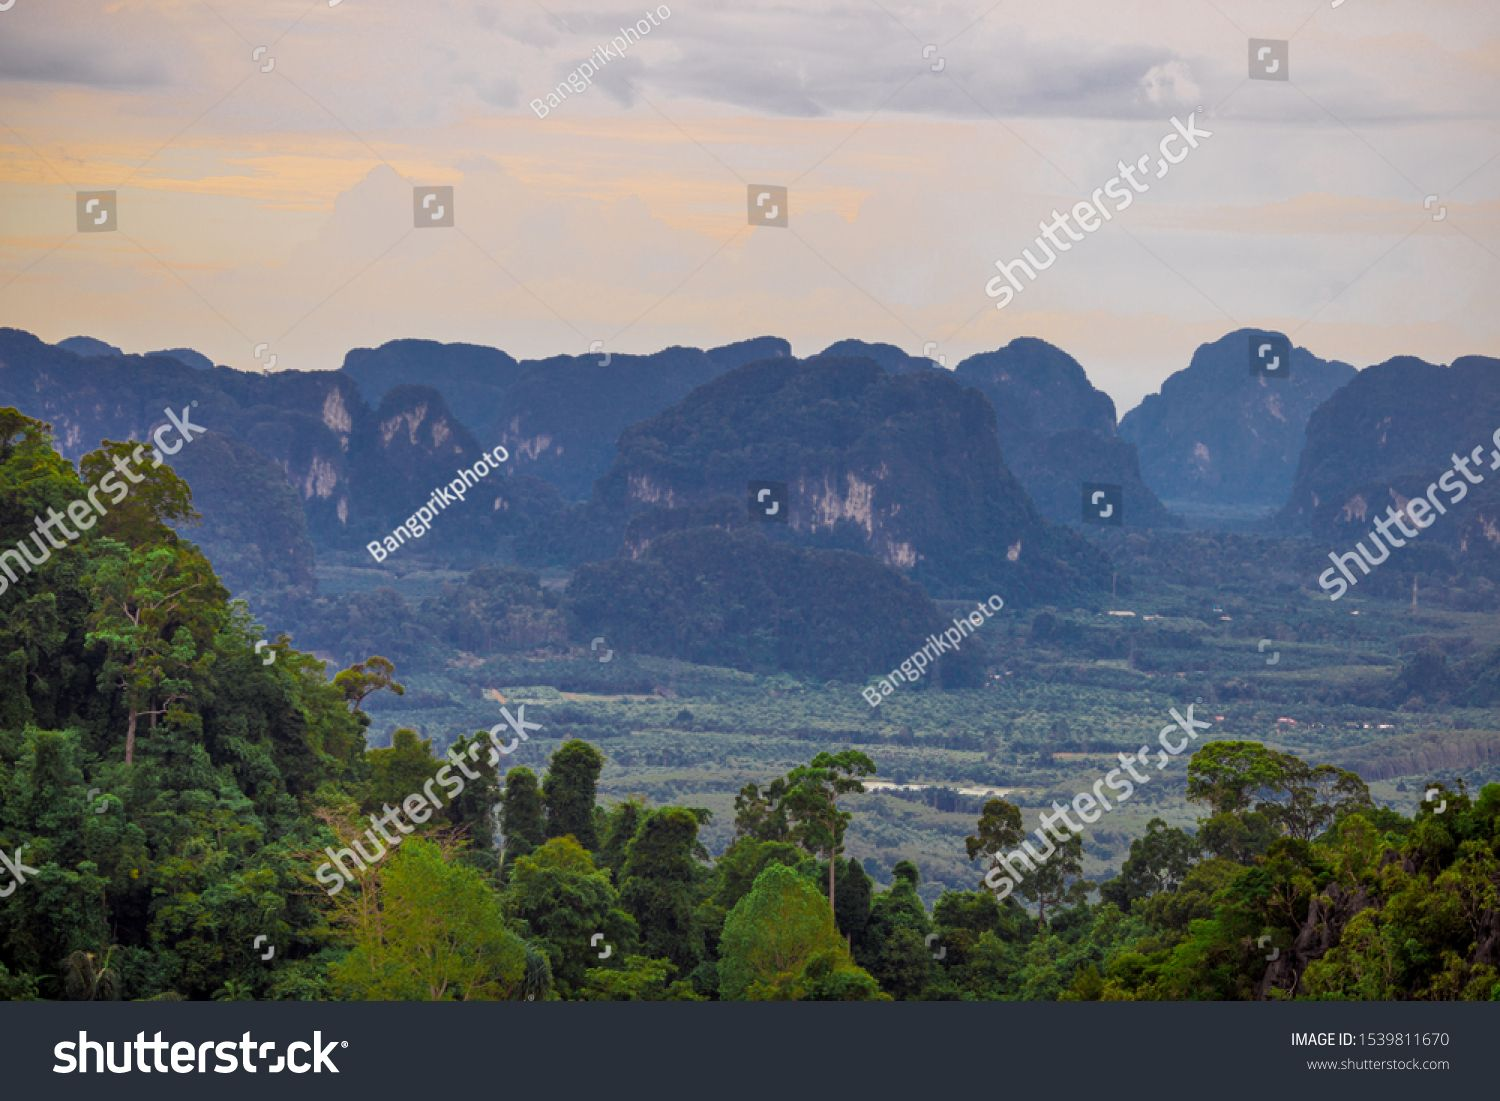 Panorama nature background on high mountains, various tree species and forest abundance, blurred wind, fresh air and cool while traveling nature studies. #Ad , #Aff, #tree#mountains#forest#species